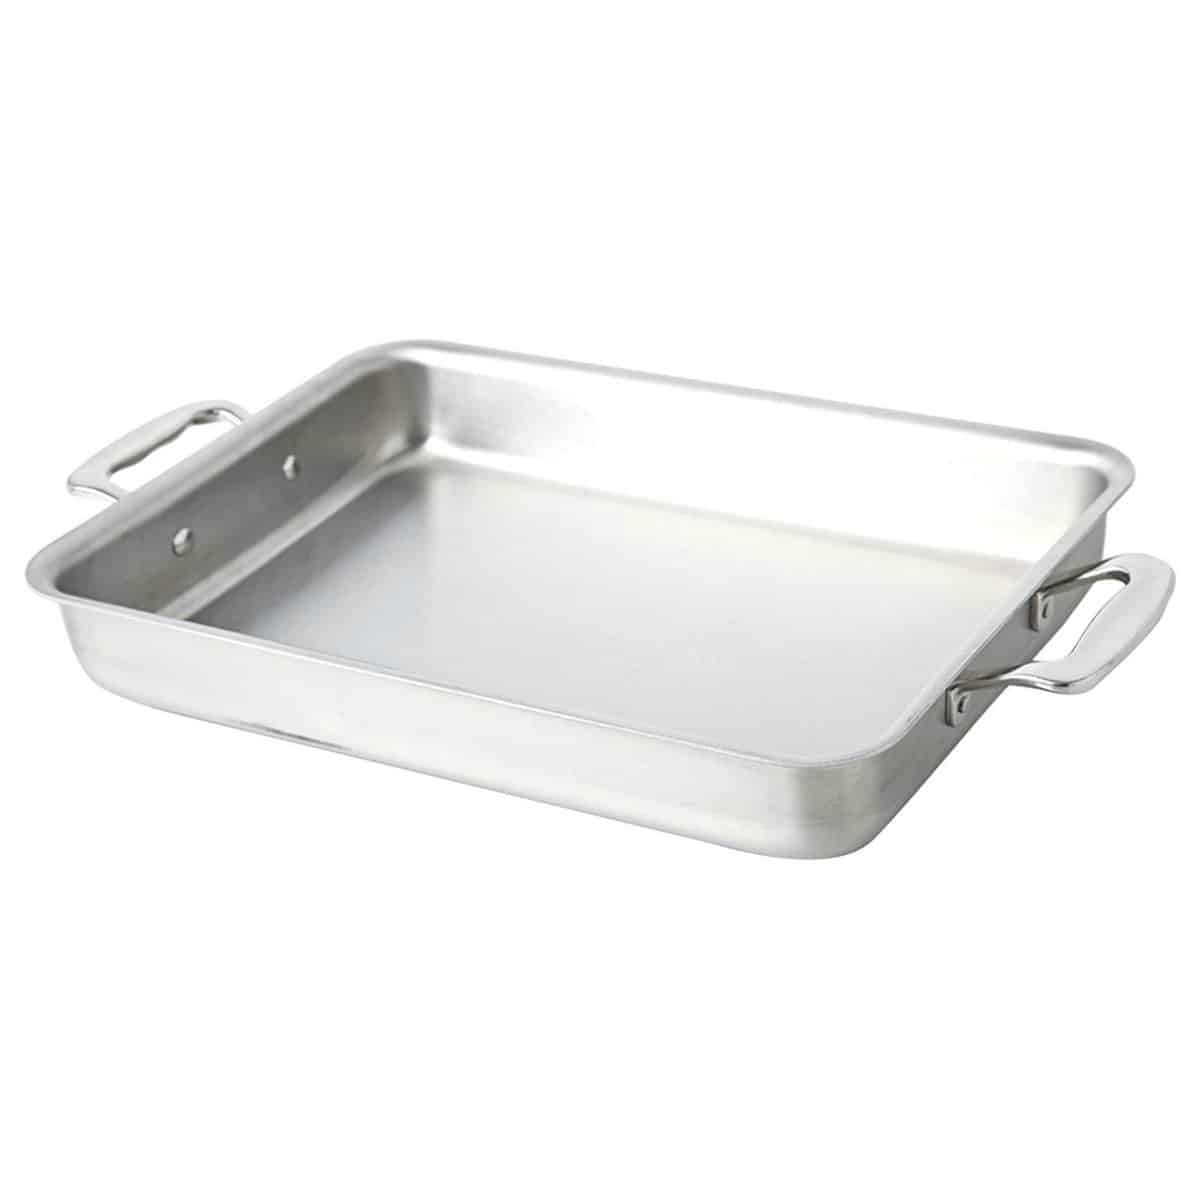 360 Cookware Stainless Steel Bakeware, 9x13 Roasting Pan